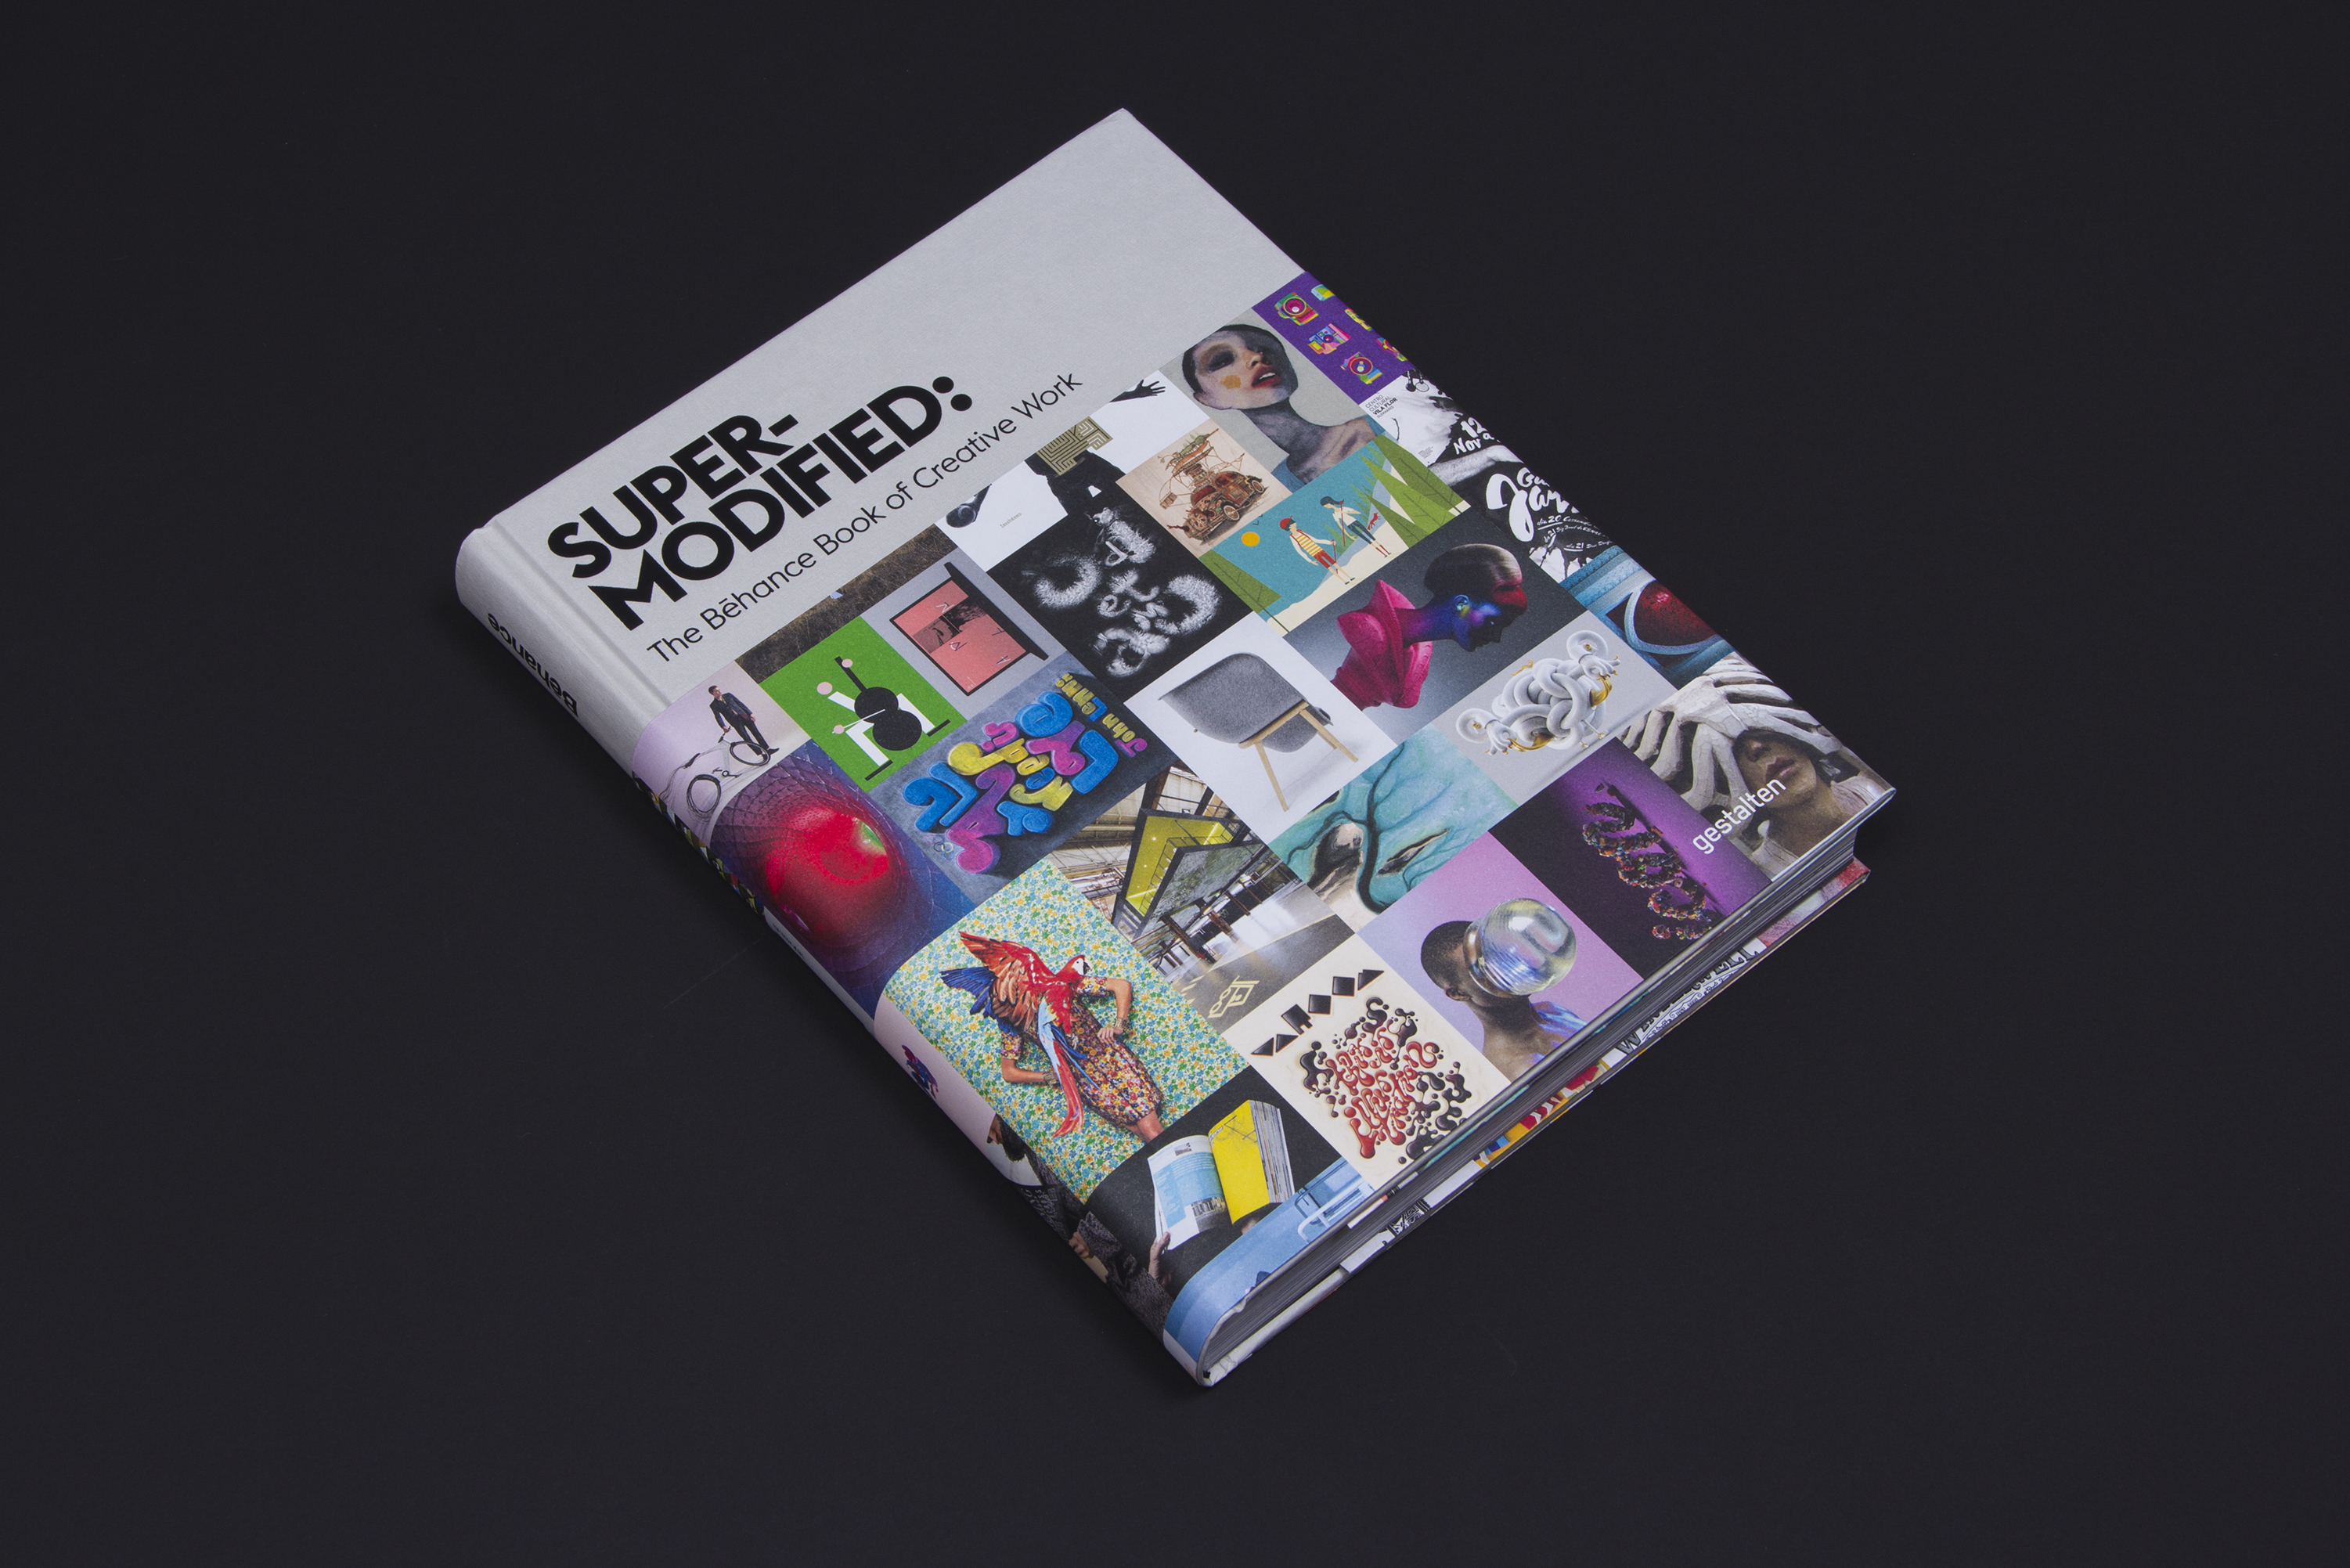 super modified the behance book of creative work pdf